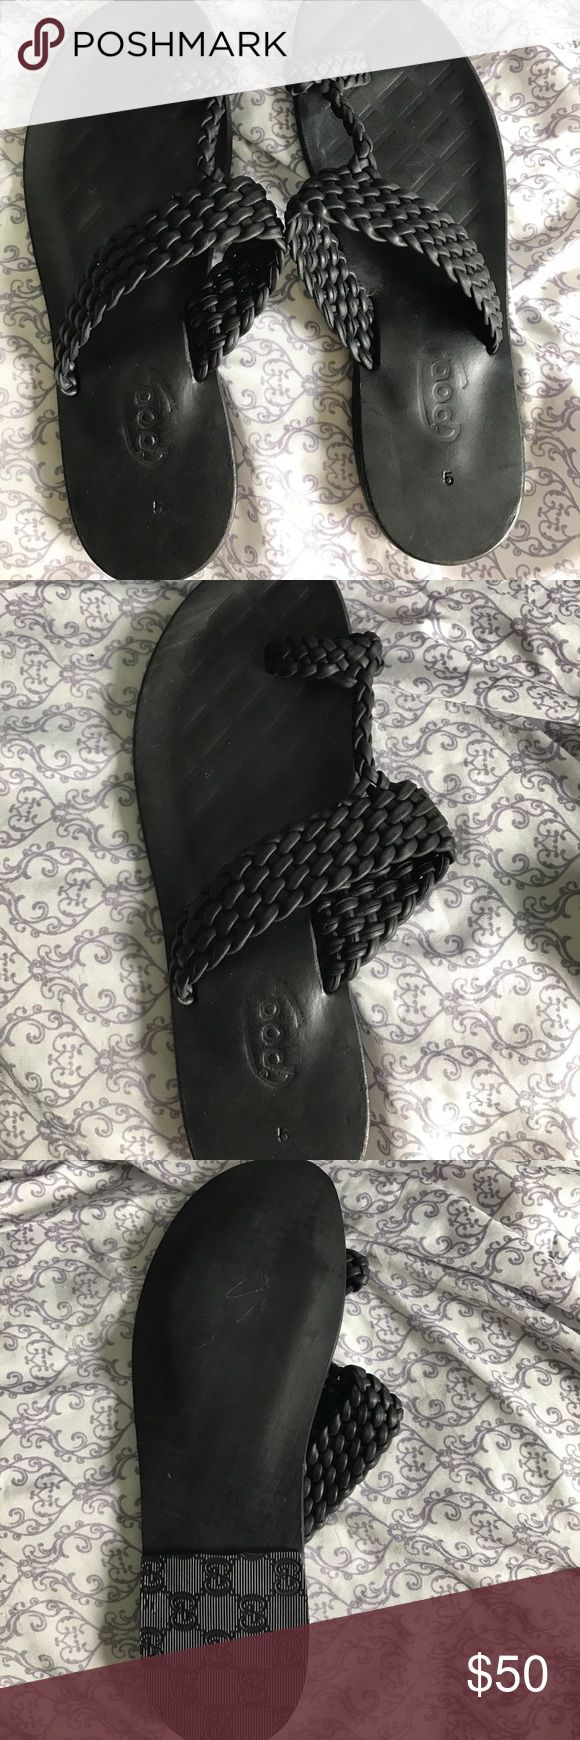 African men's leather slippers Leather slippers Shoes